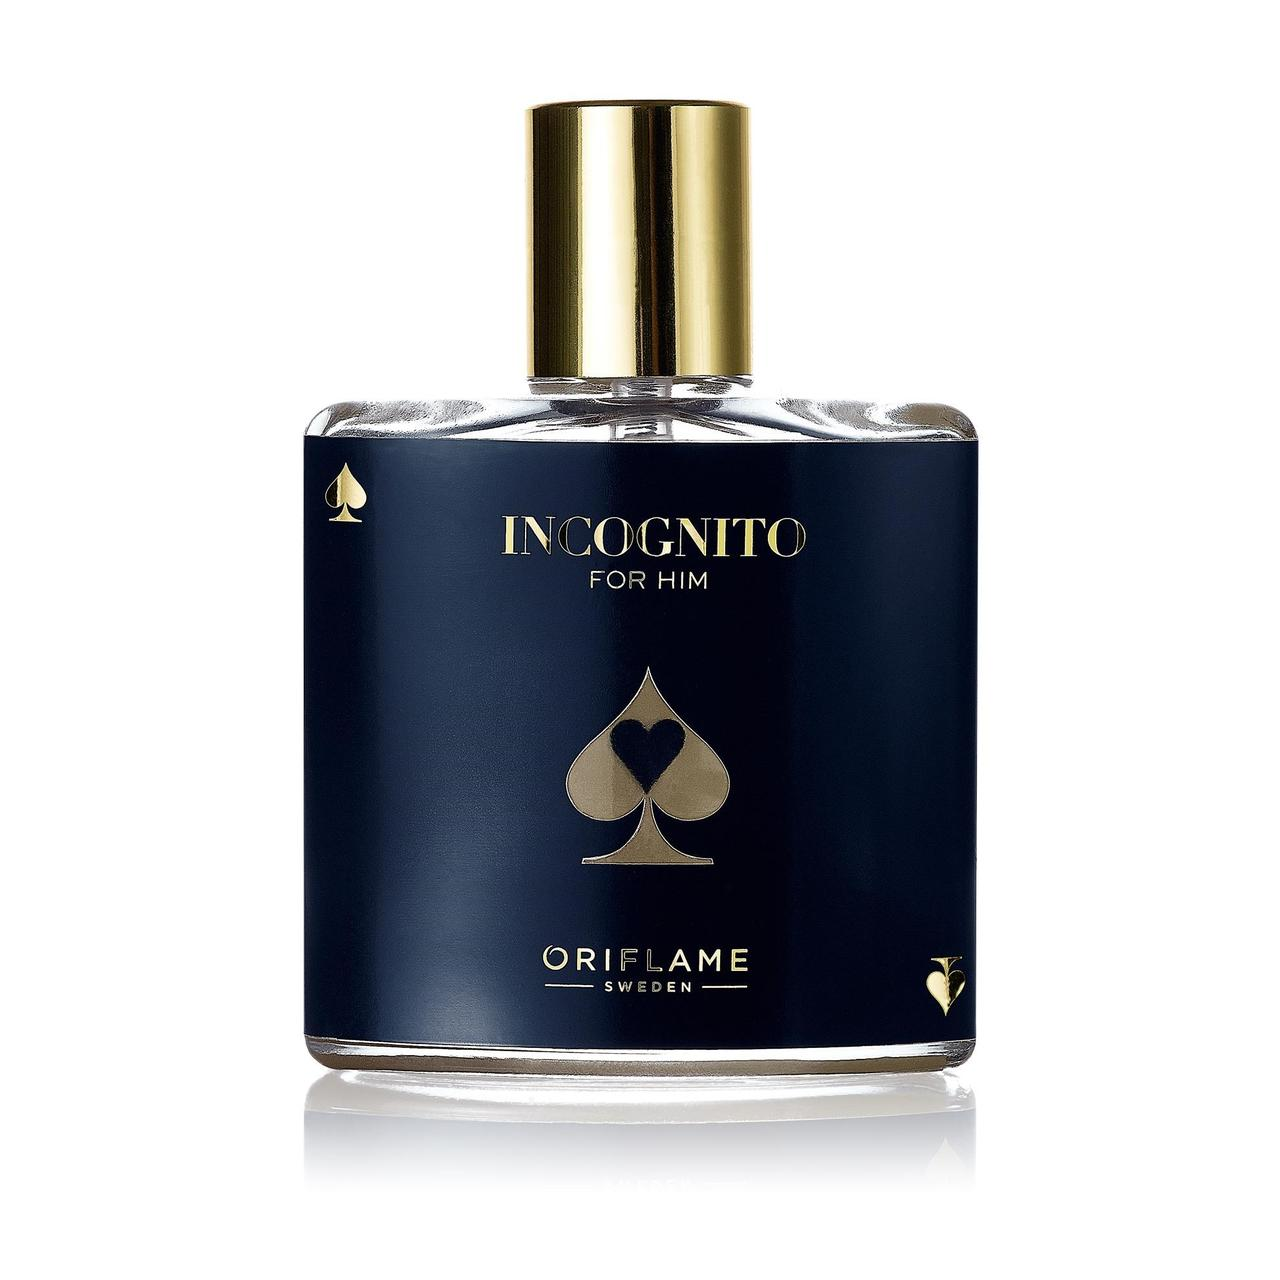 Туалетная вода Incognito for him Oriflame